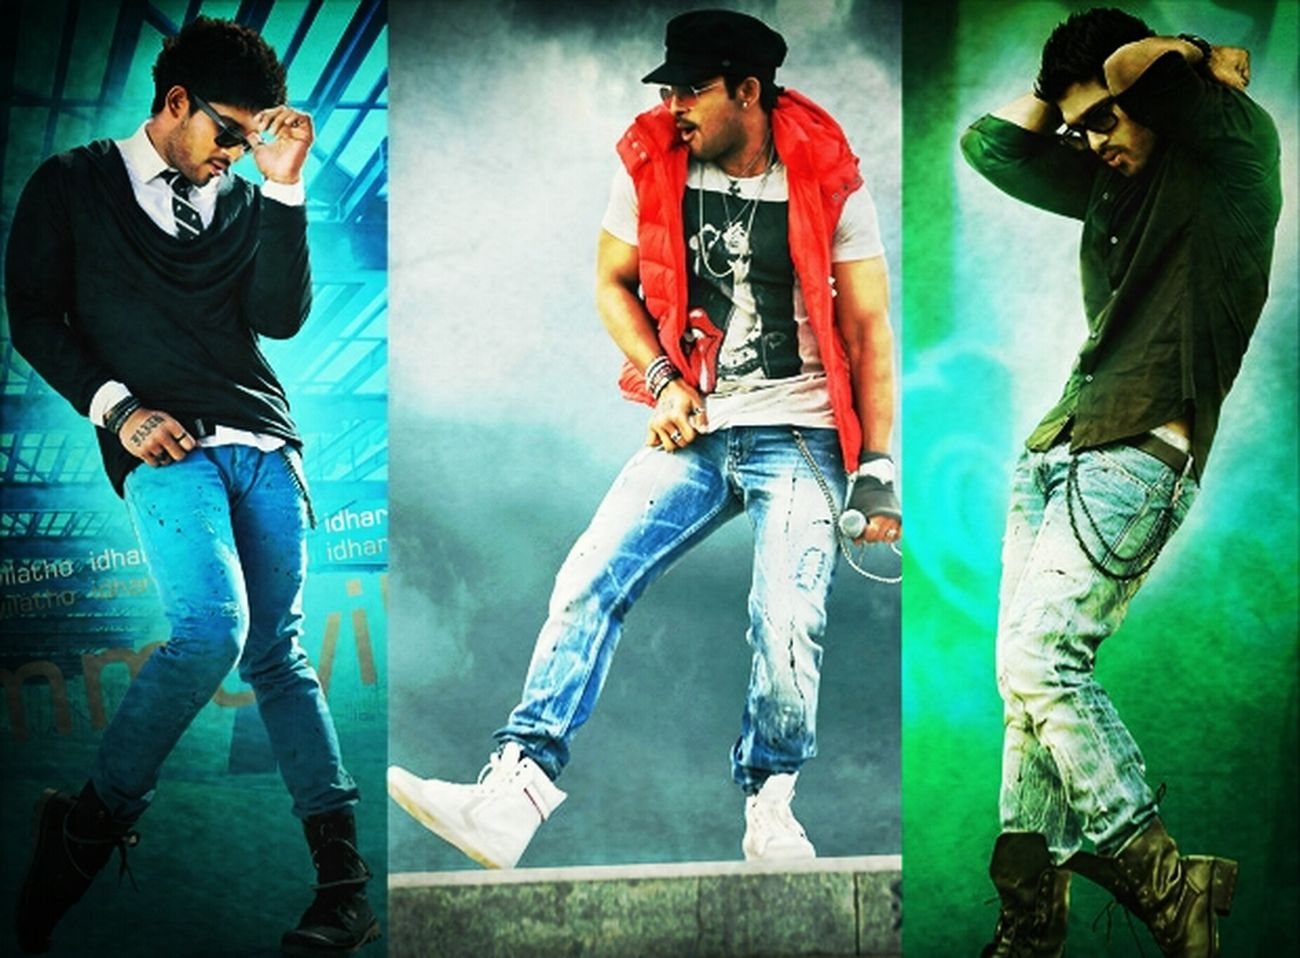 south indian MJ <3 Check This Out